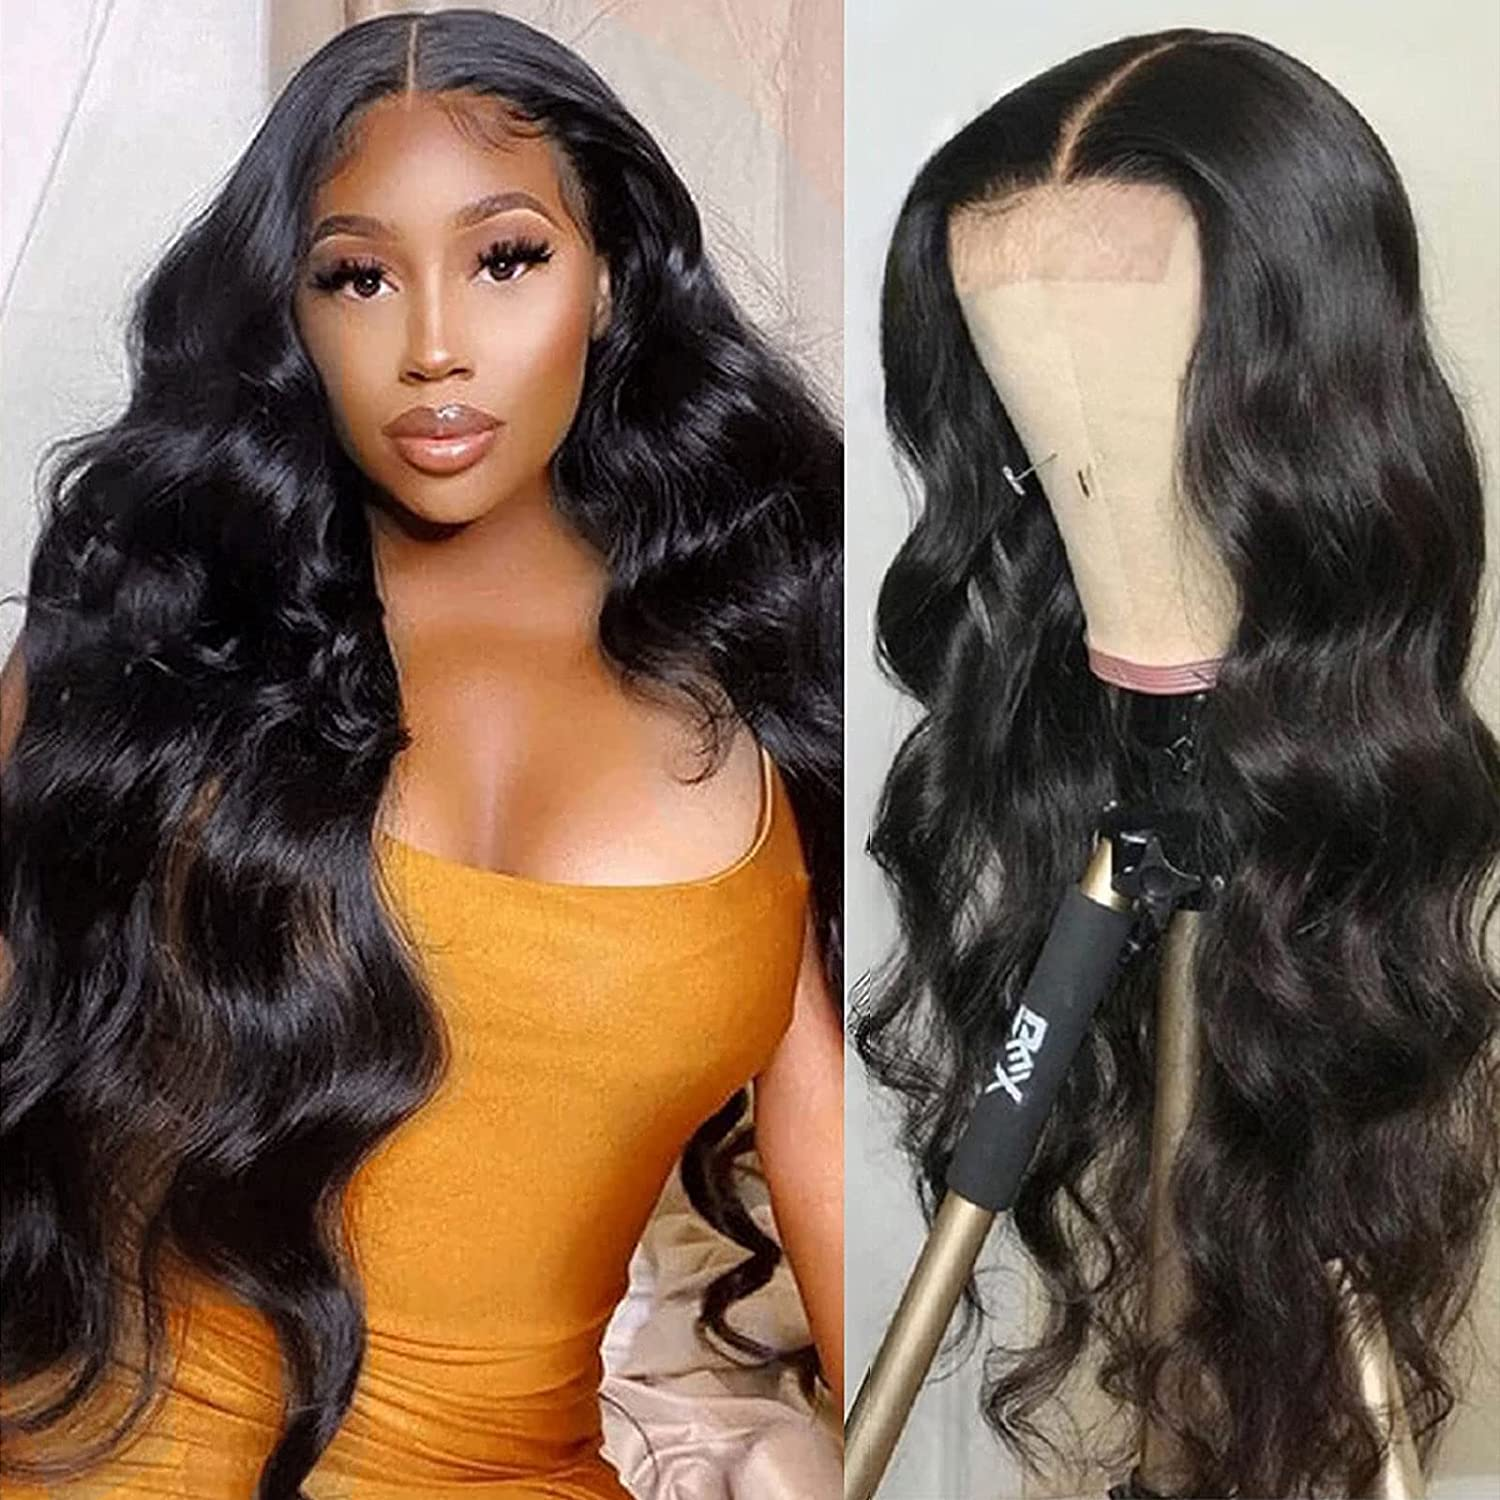 Gifts Lace Front Wigs Human Hair Pre Large-scale sale Wave Plucked Body Closur 4x4